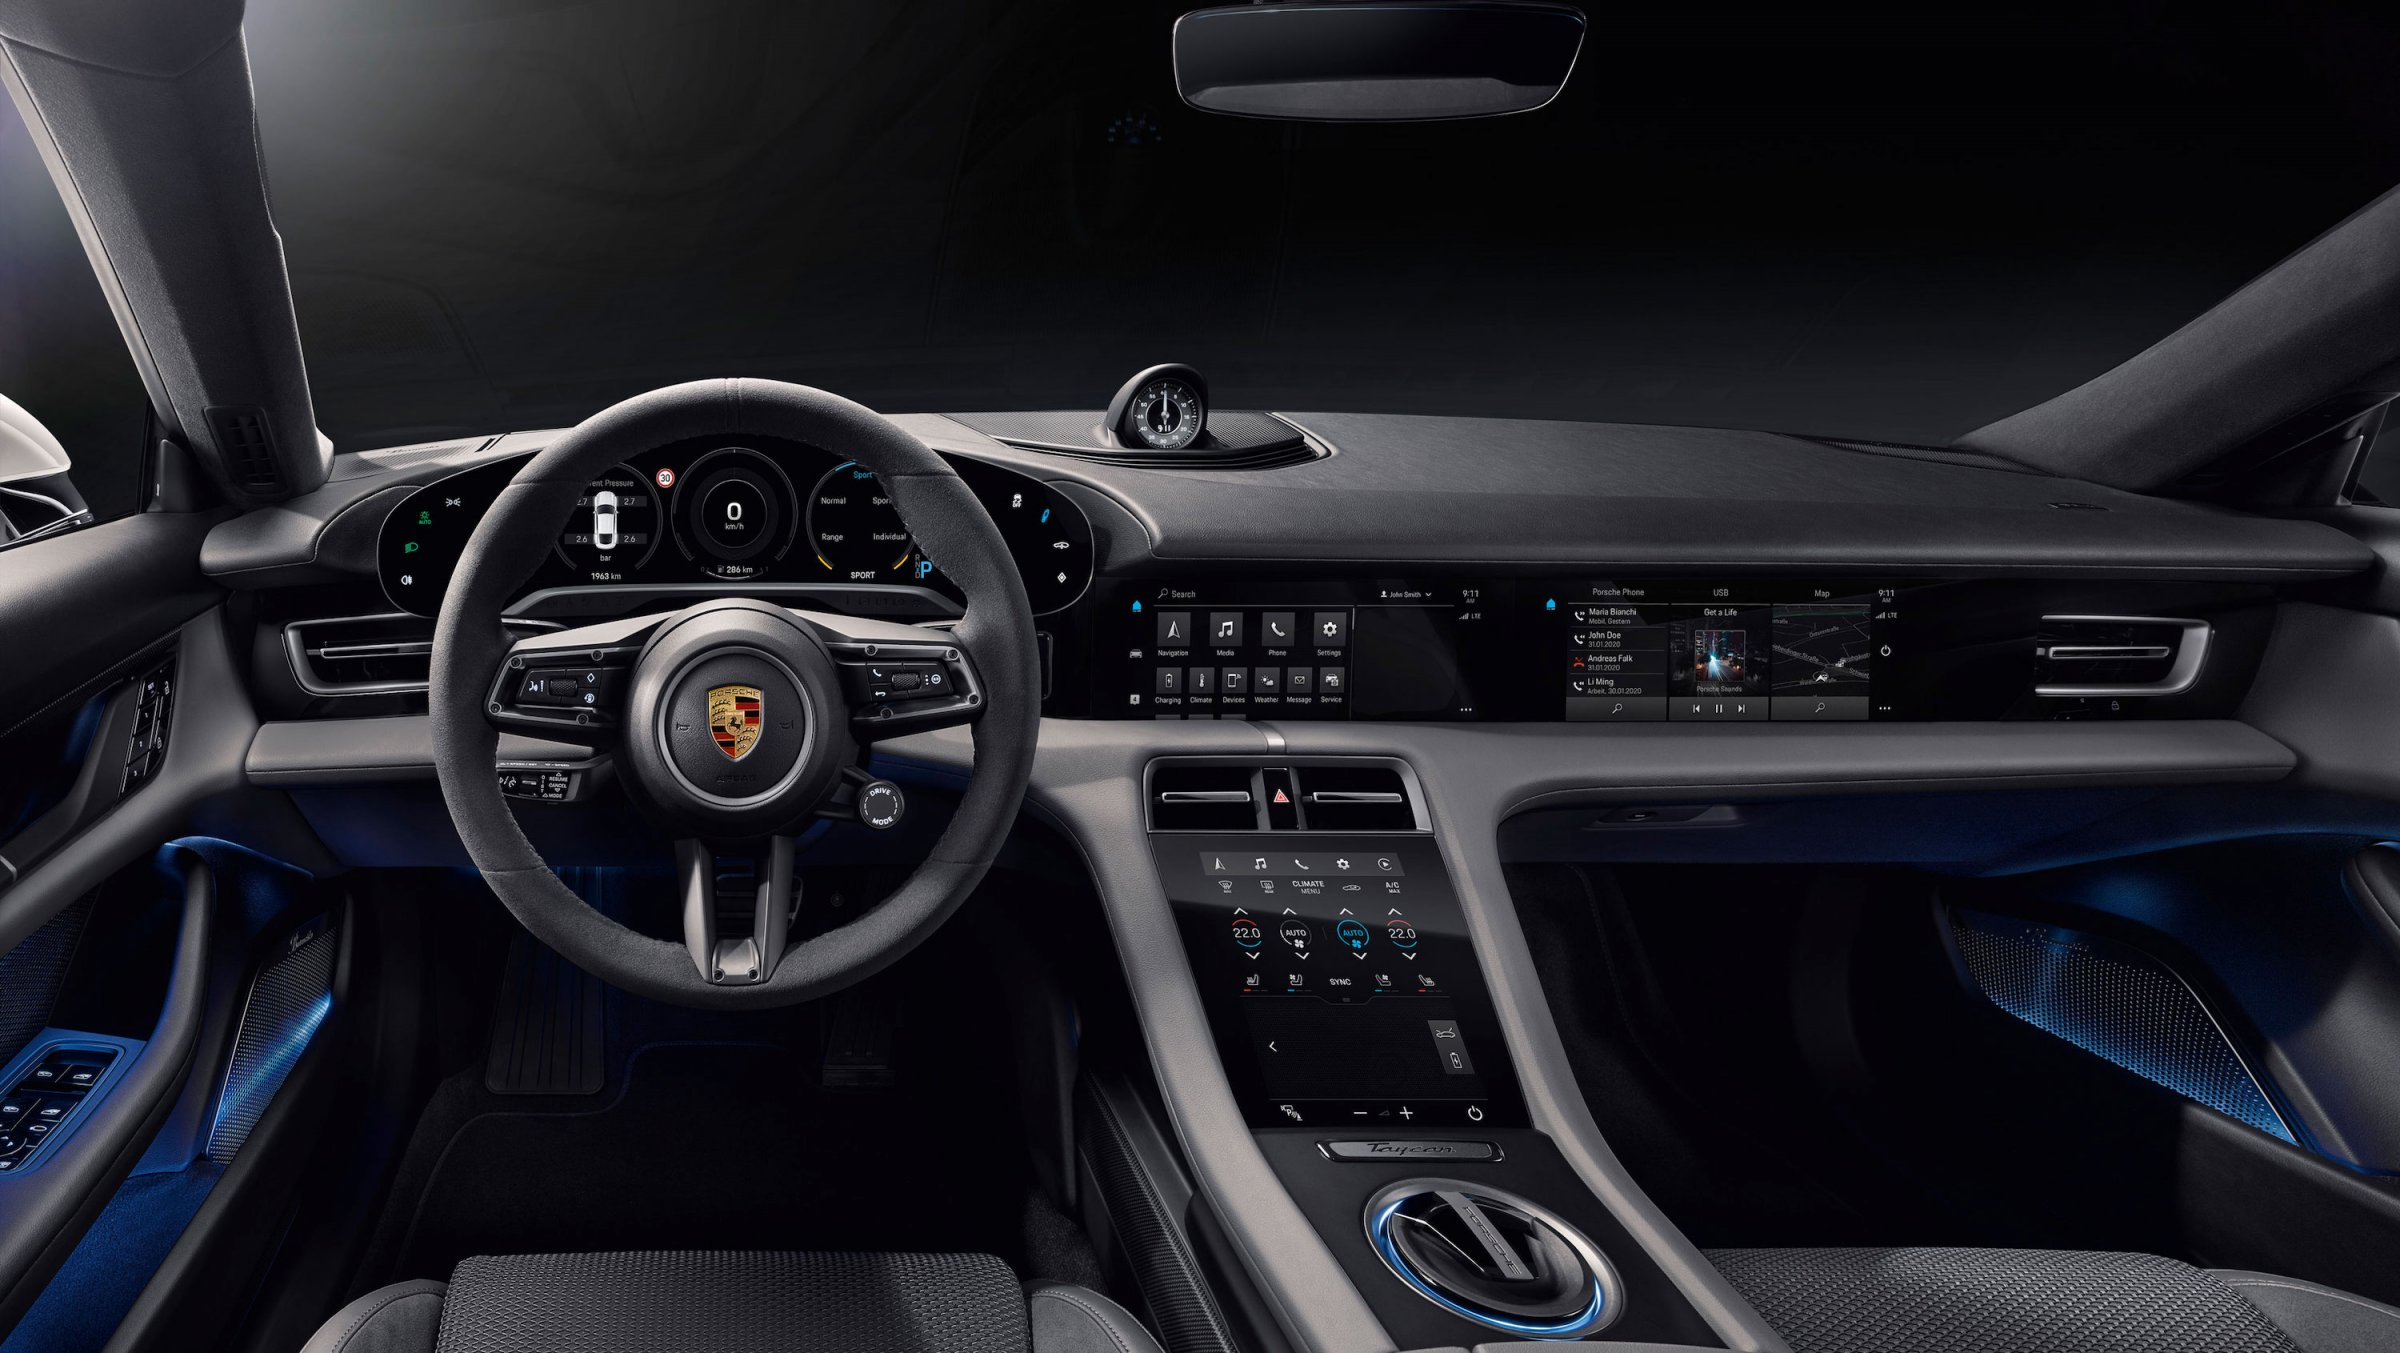 The beautiful All-electric Porsche Taycan interiors revealed today by the company.